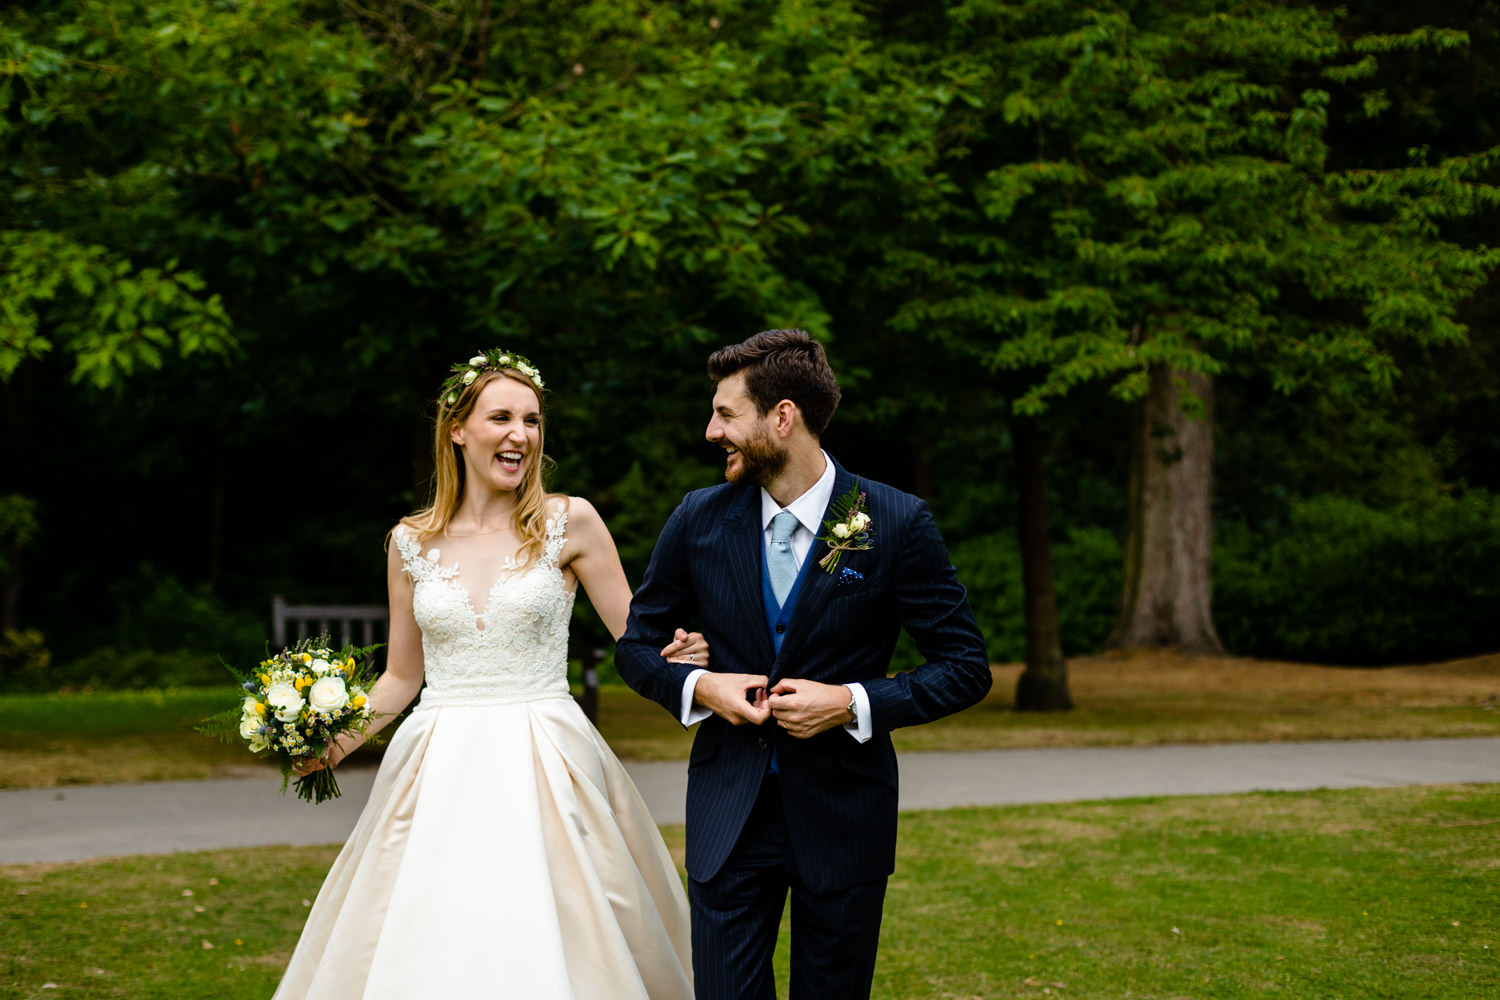 A bride and groom laughing as they walk, Whirlowbrook HallSheffield wedding photography